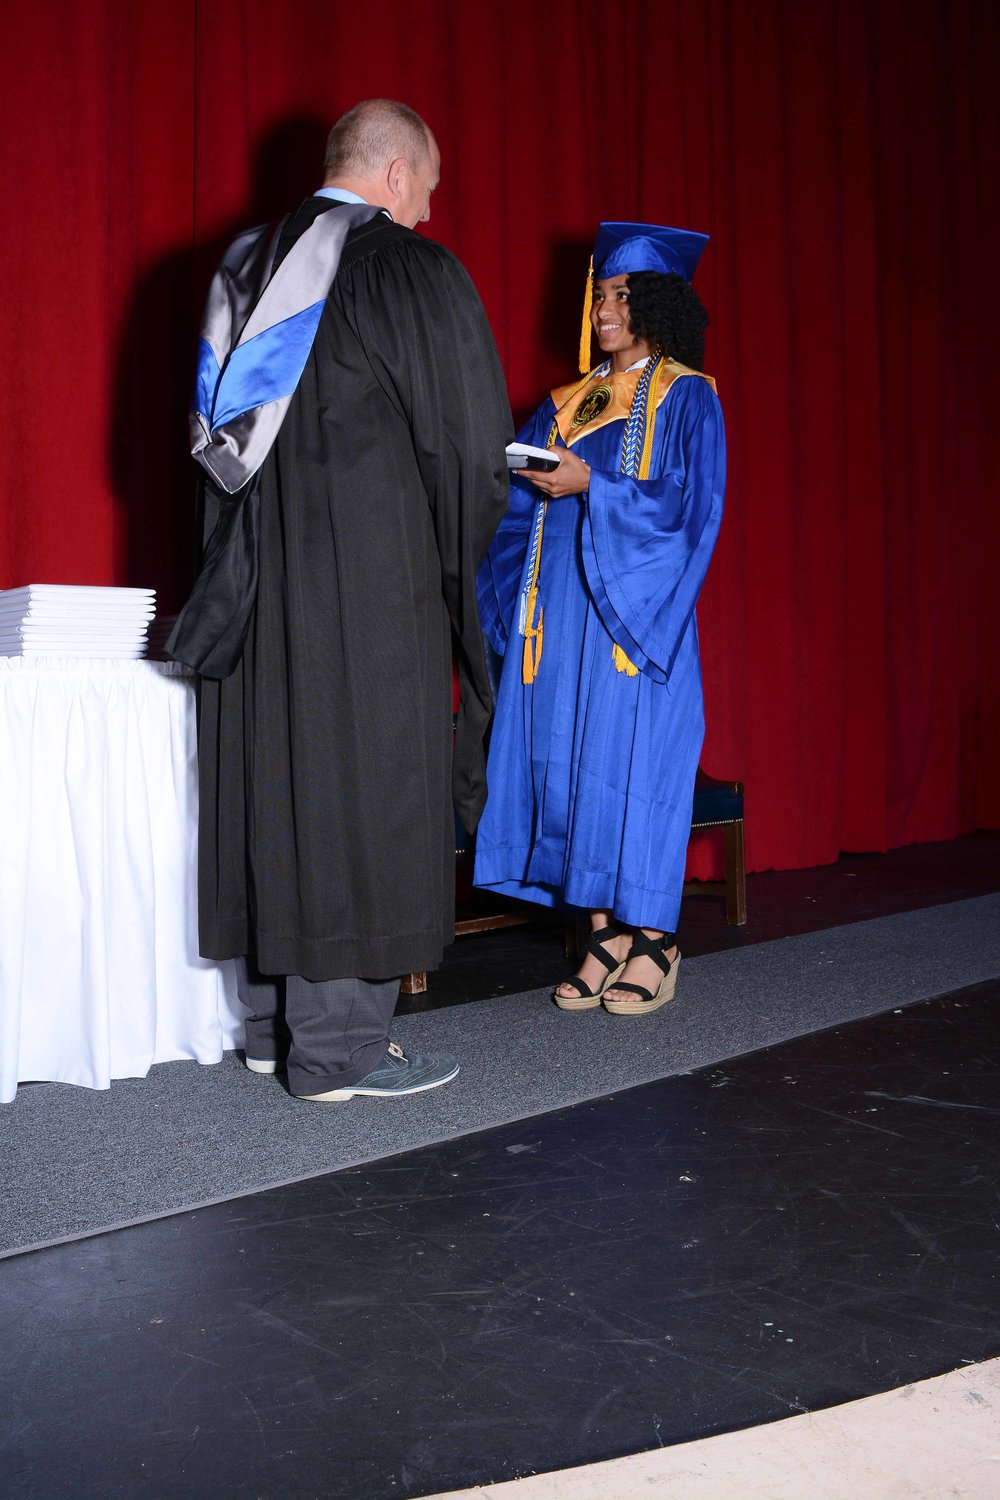 May14 Commencement81.jpg